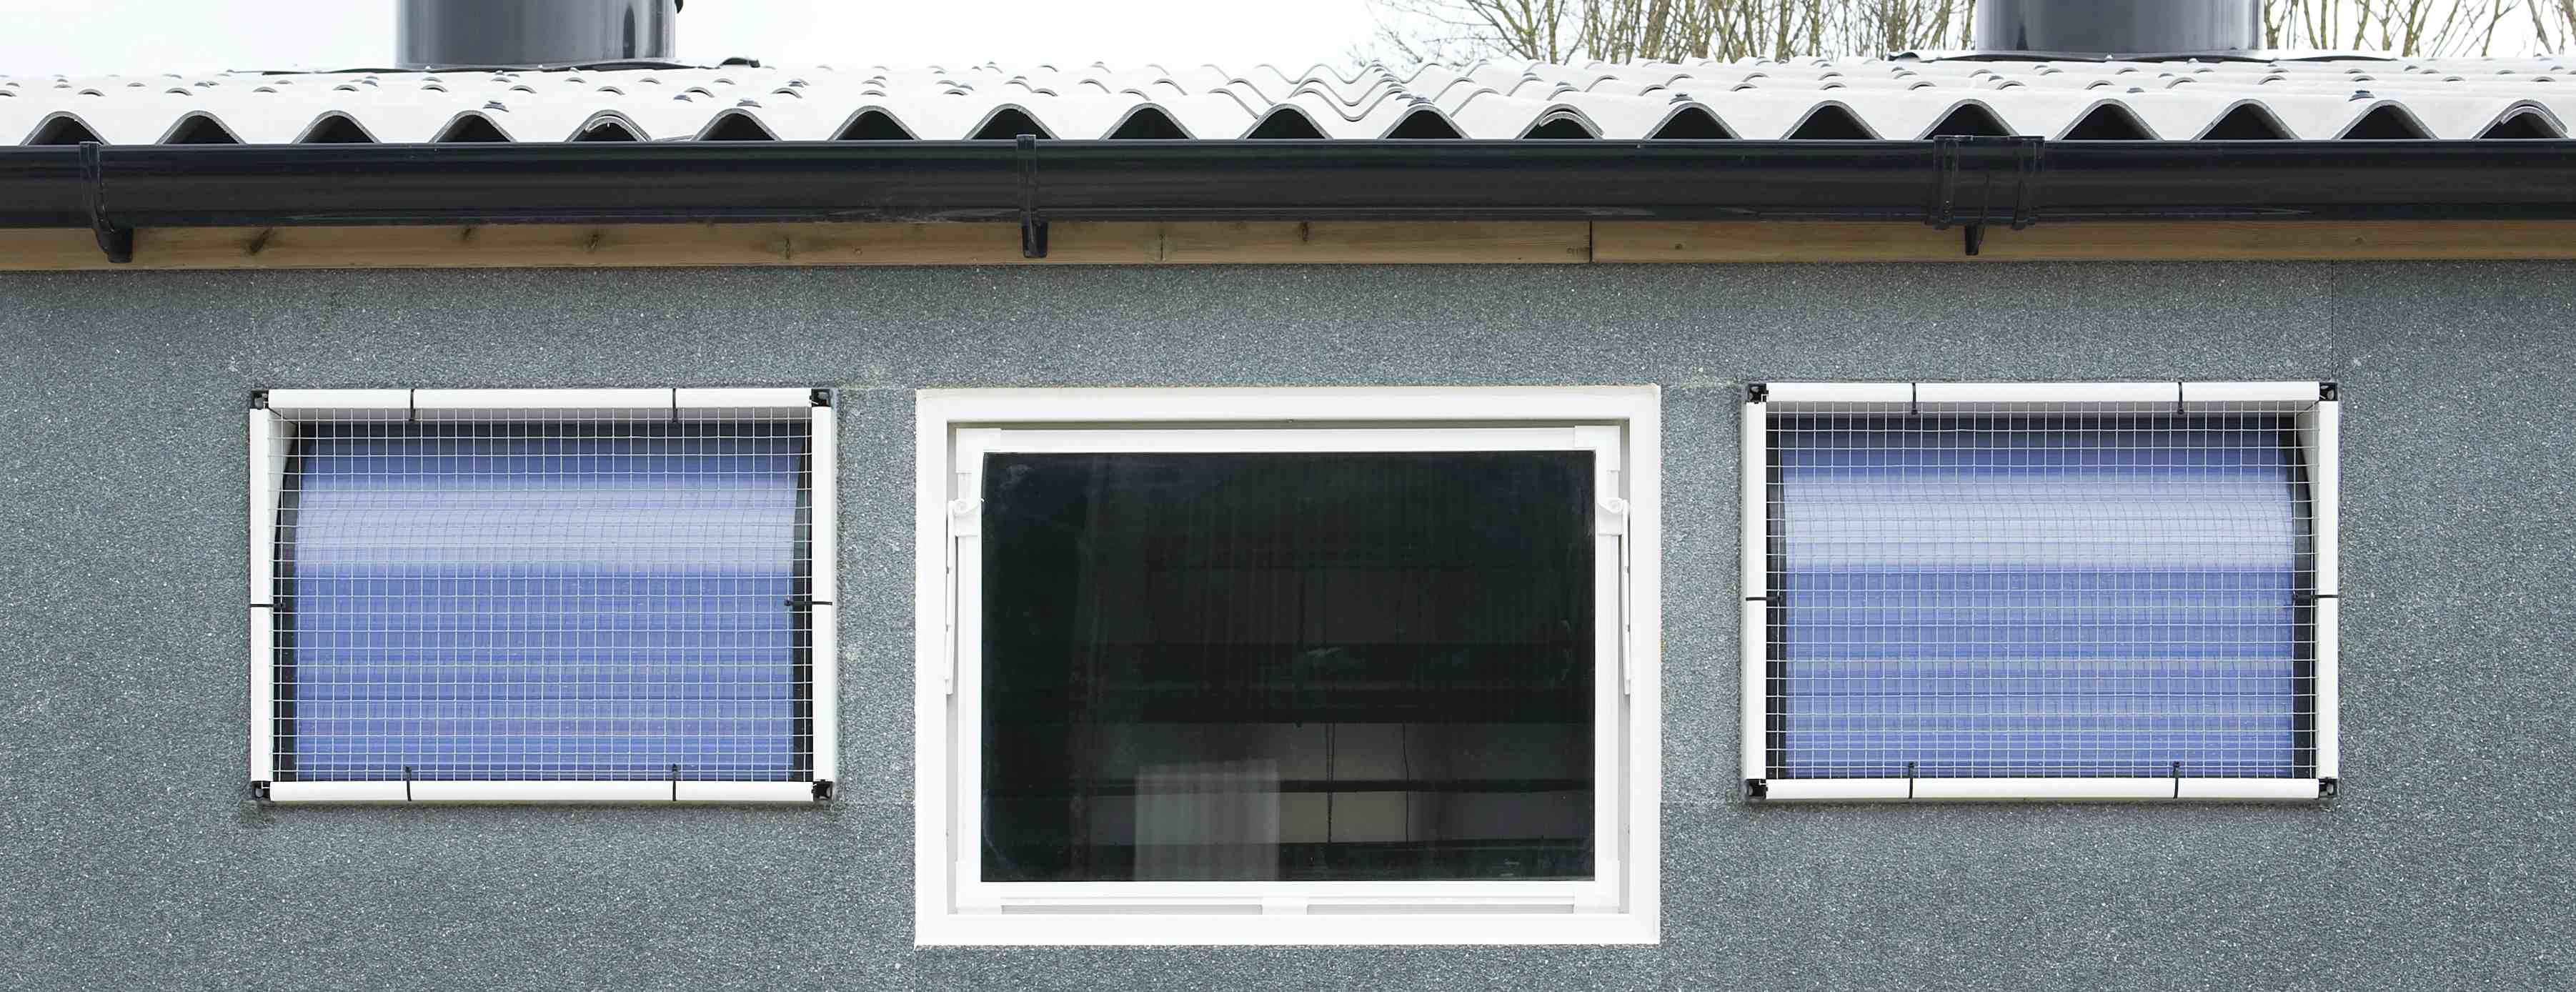 Flexstone cladding